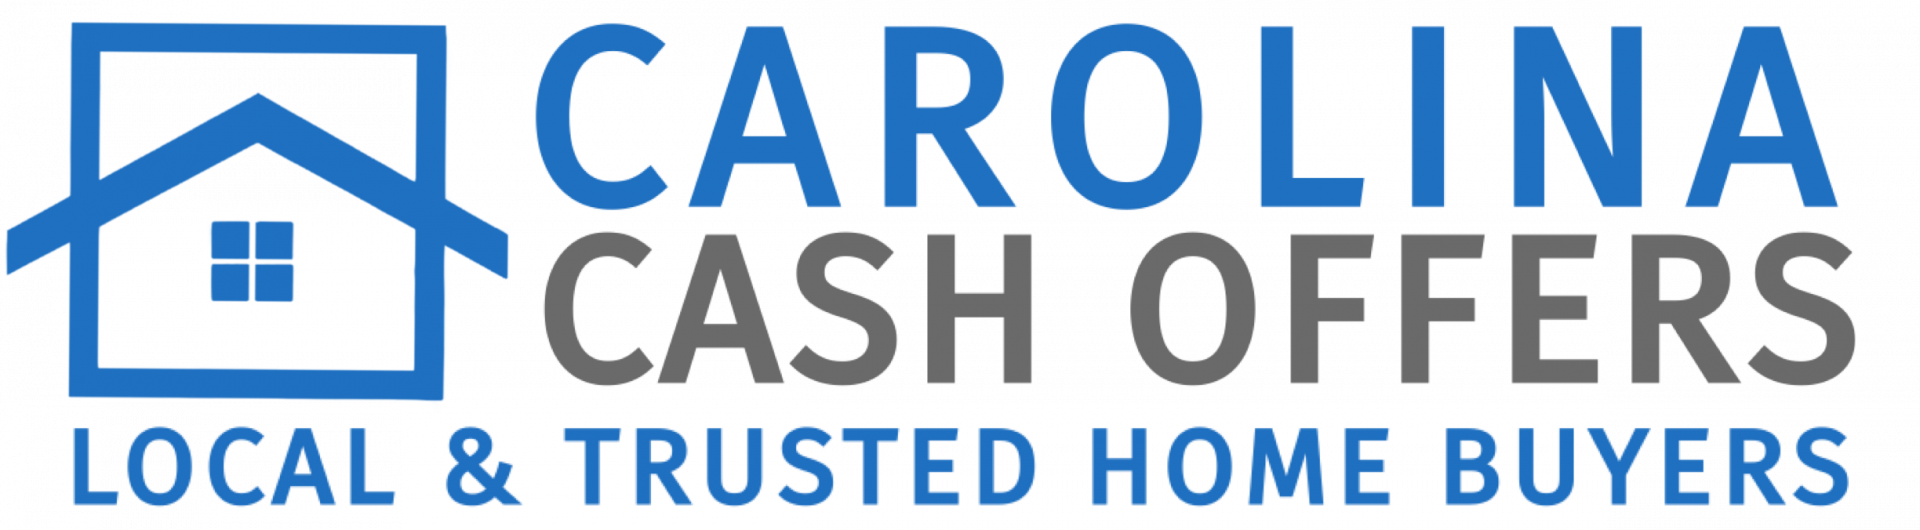 Carolina Cash Offers logo